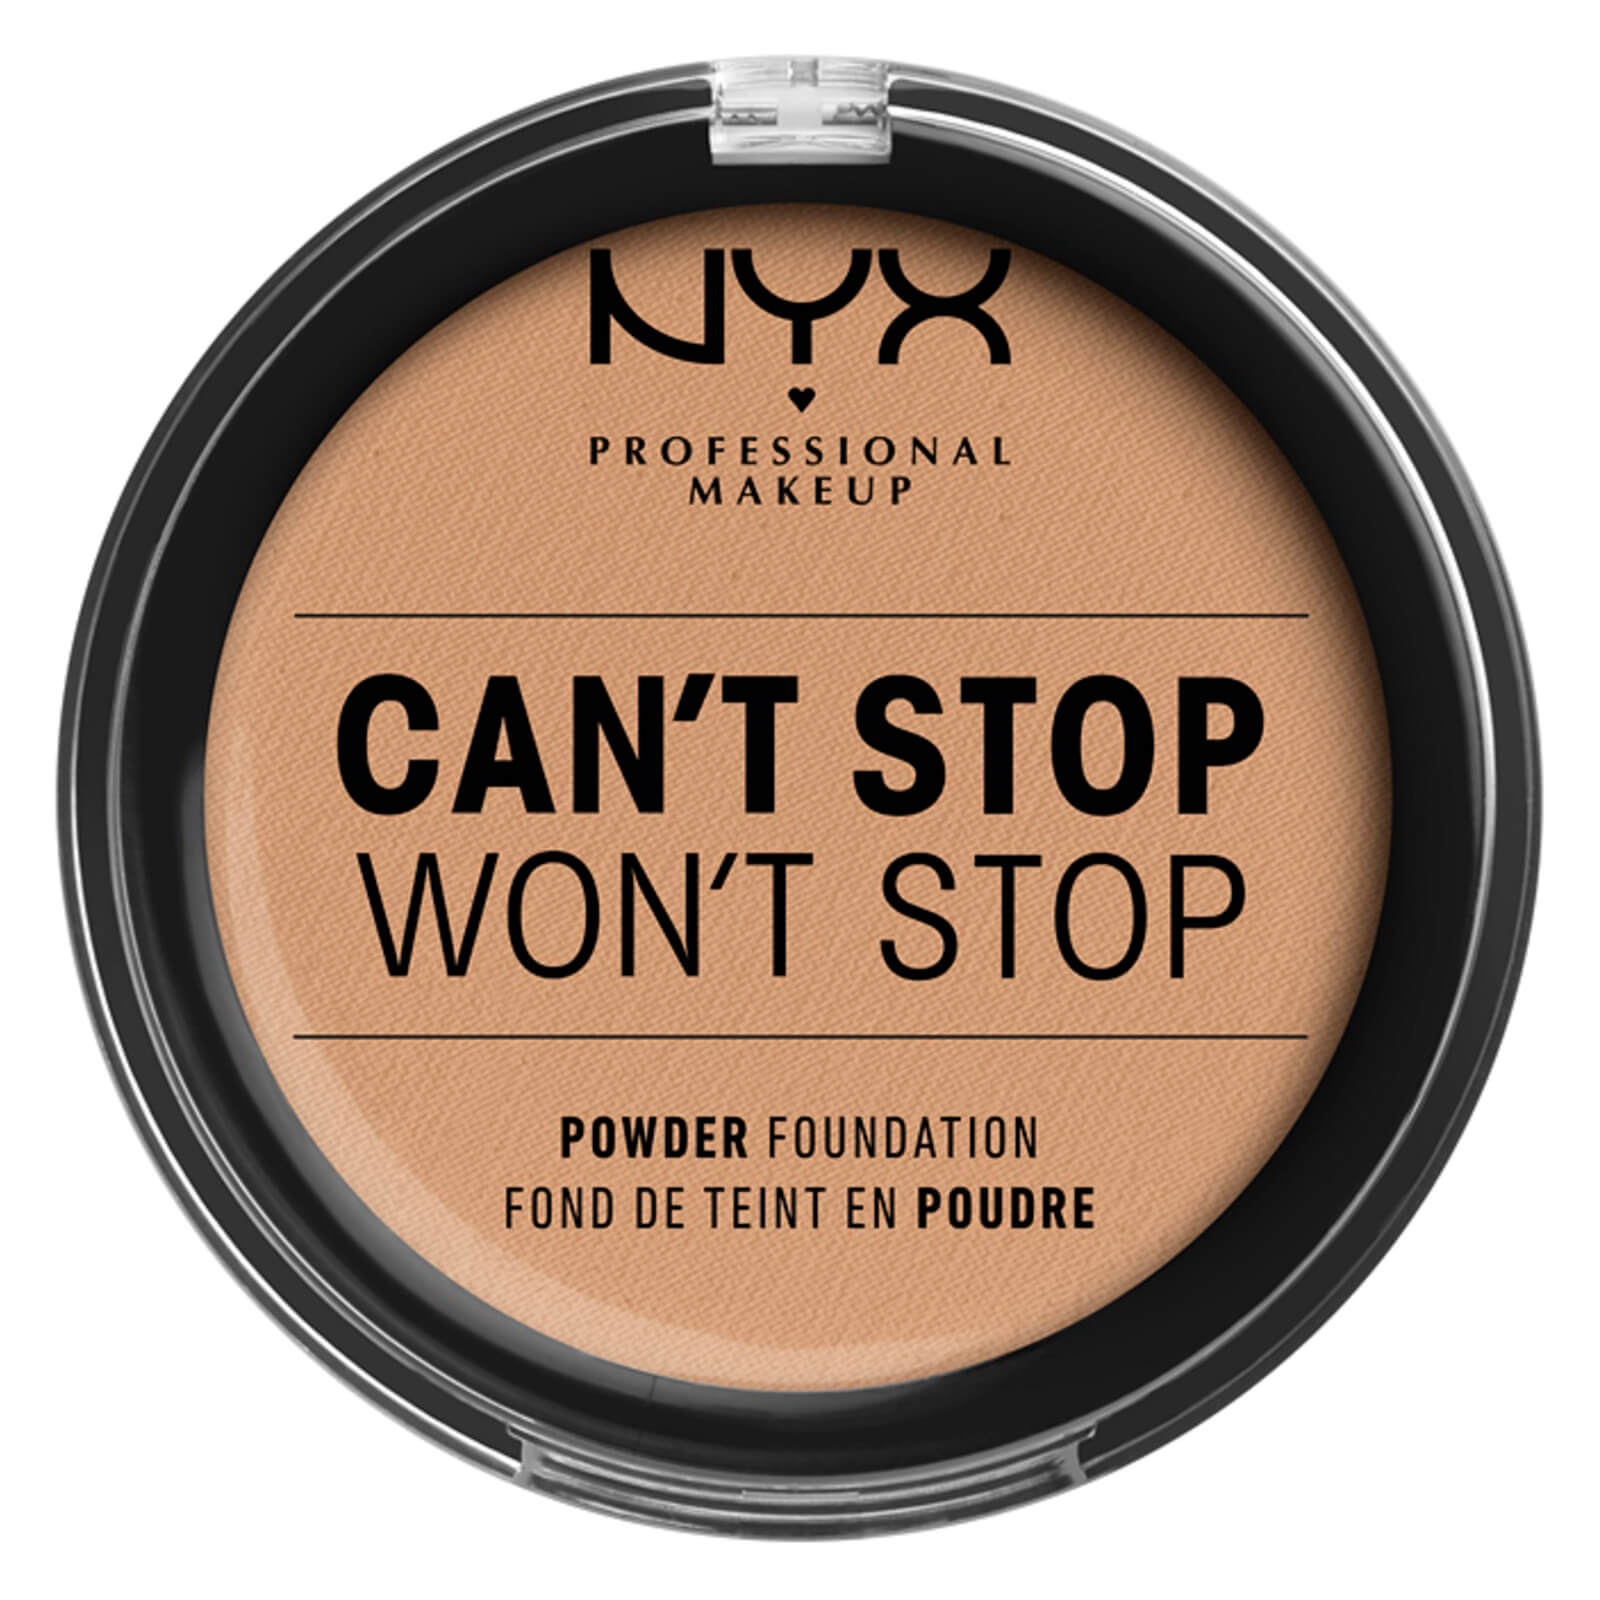 NYX Professional Makeup Can't Stop Won't Stop Powder Foundation (Various Shades) - Medium Olive